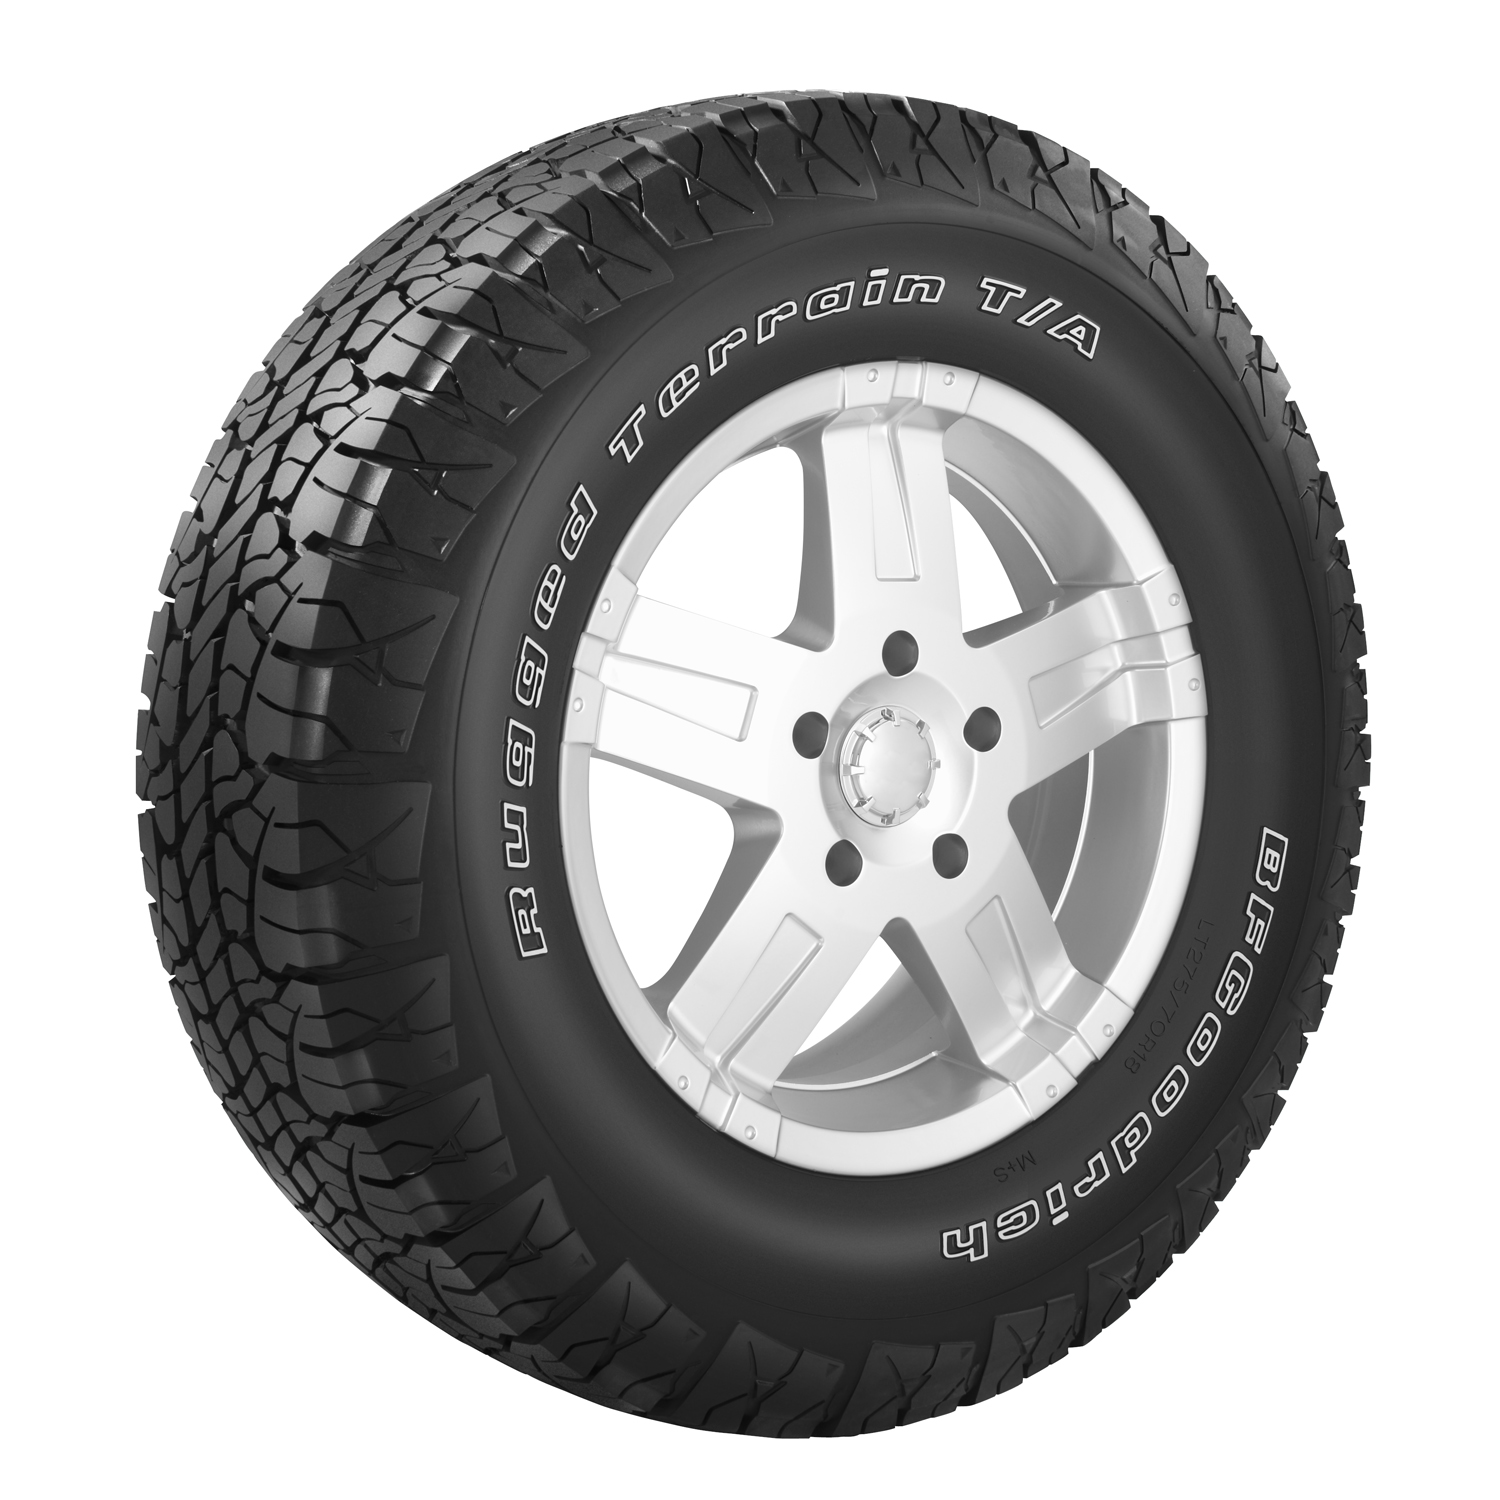 Rugged Terrain T/A - LT275/70R18E 125R OWL - All Season Tire